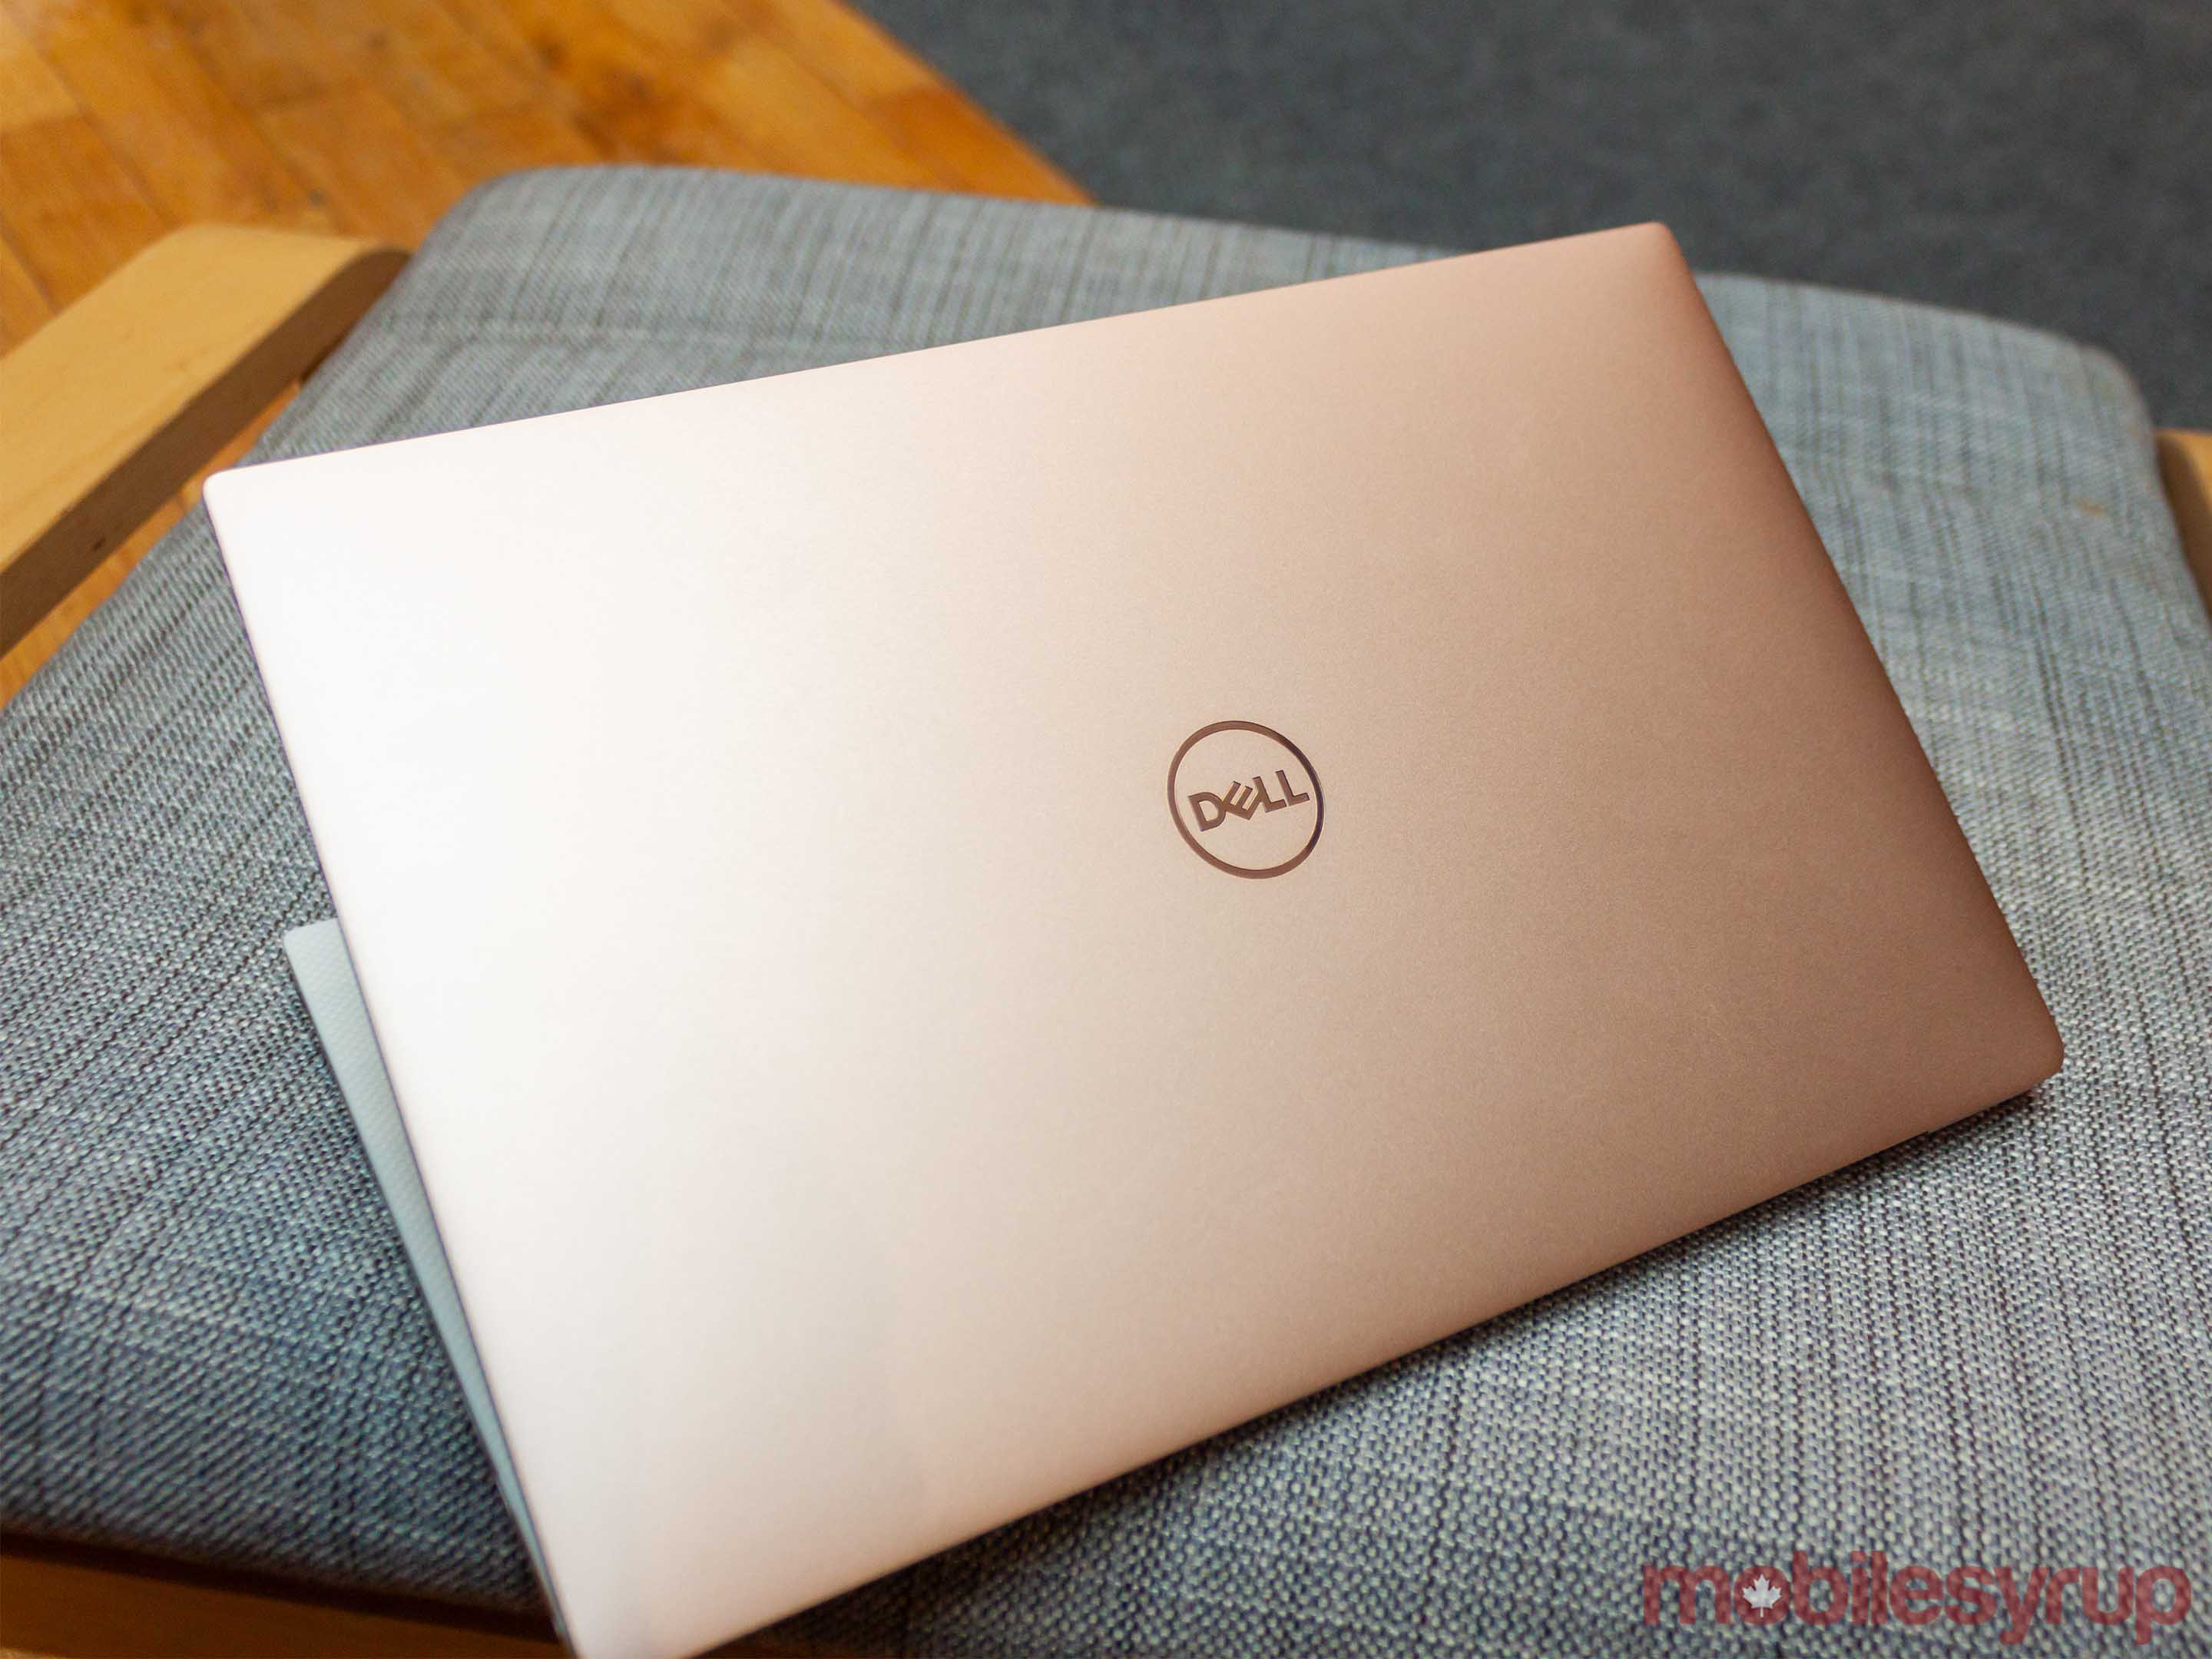 Dell XPS 13 in new Gold and White colour